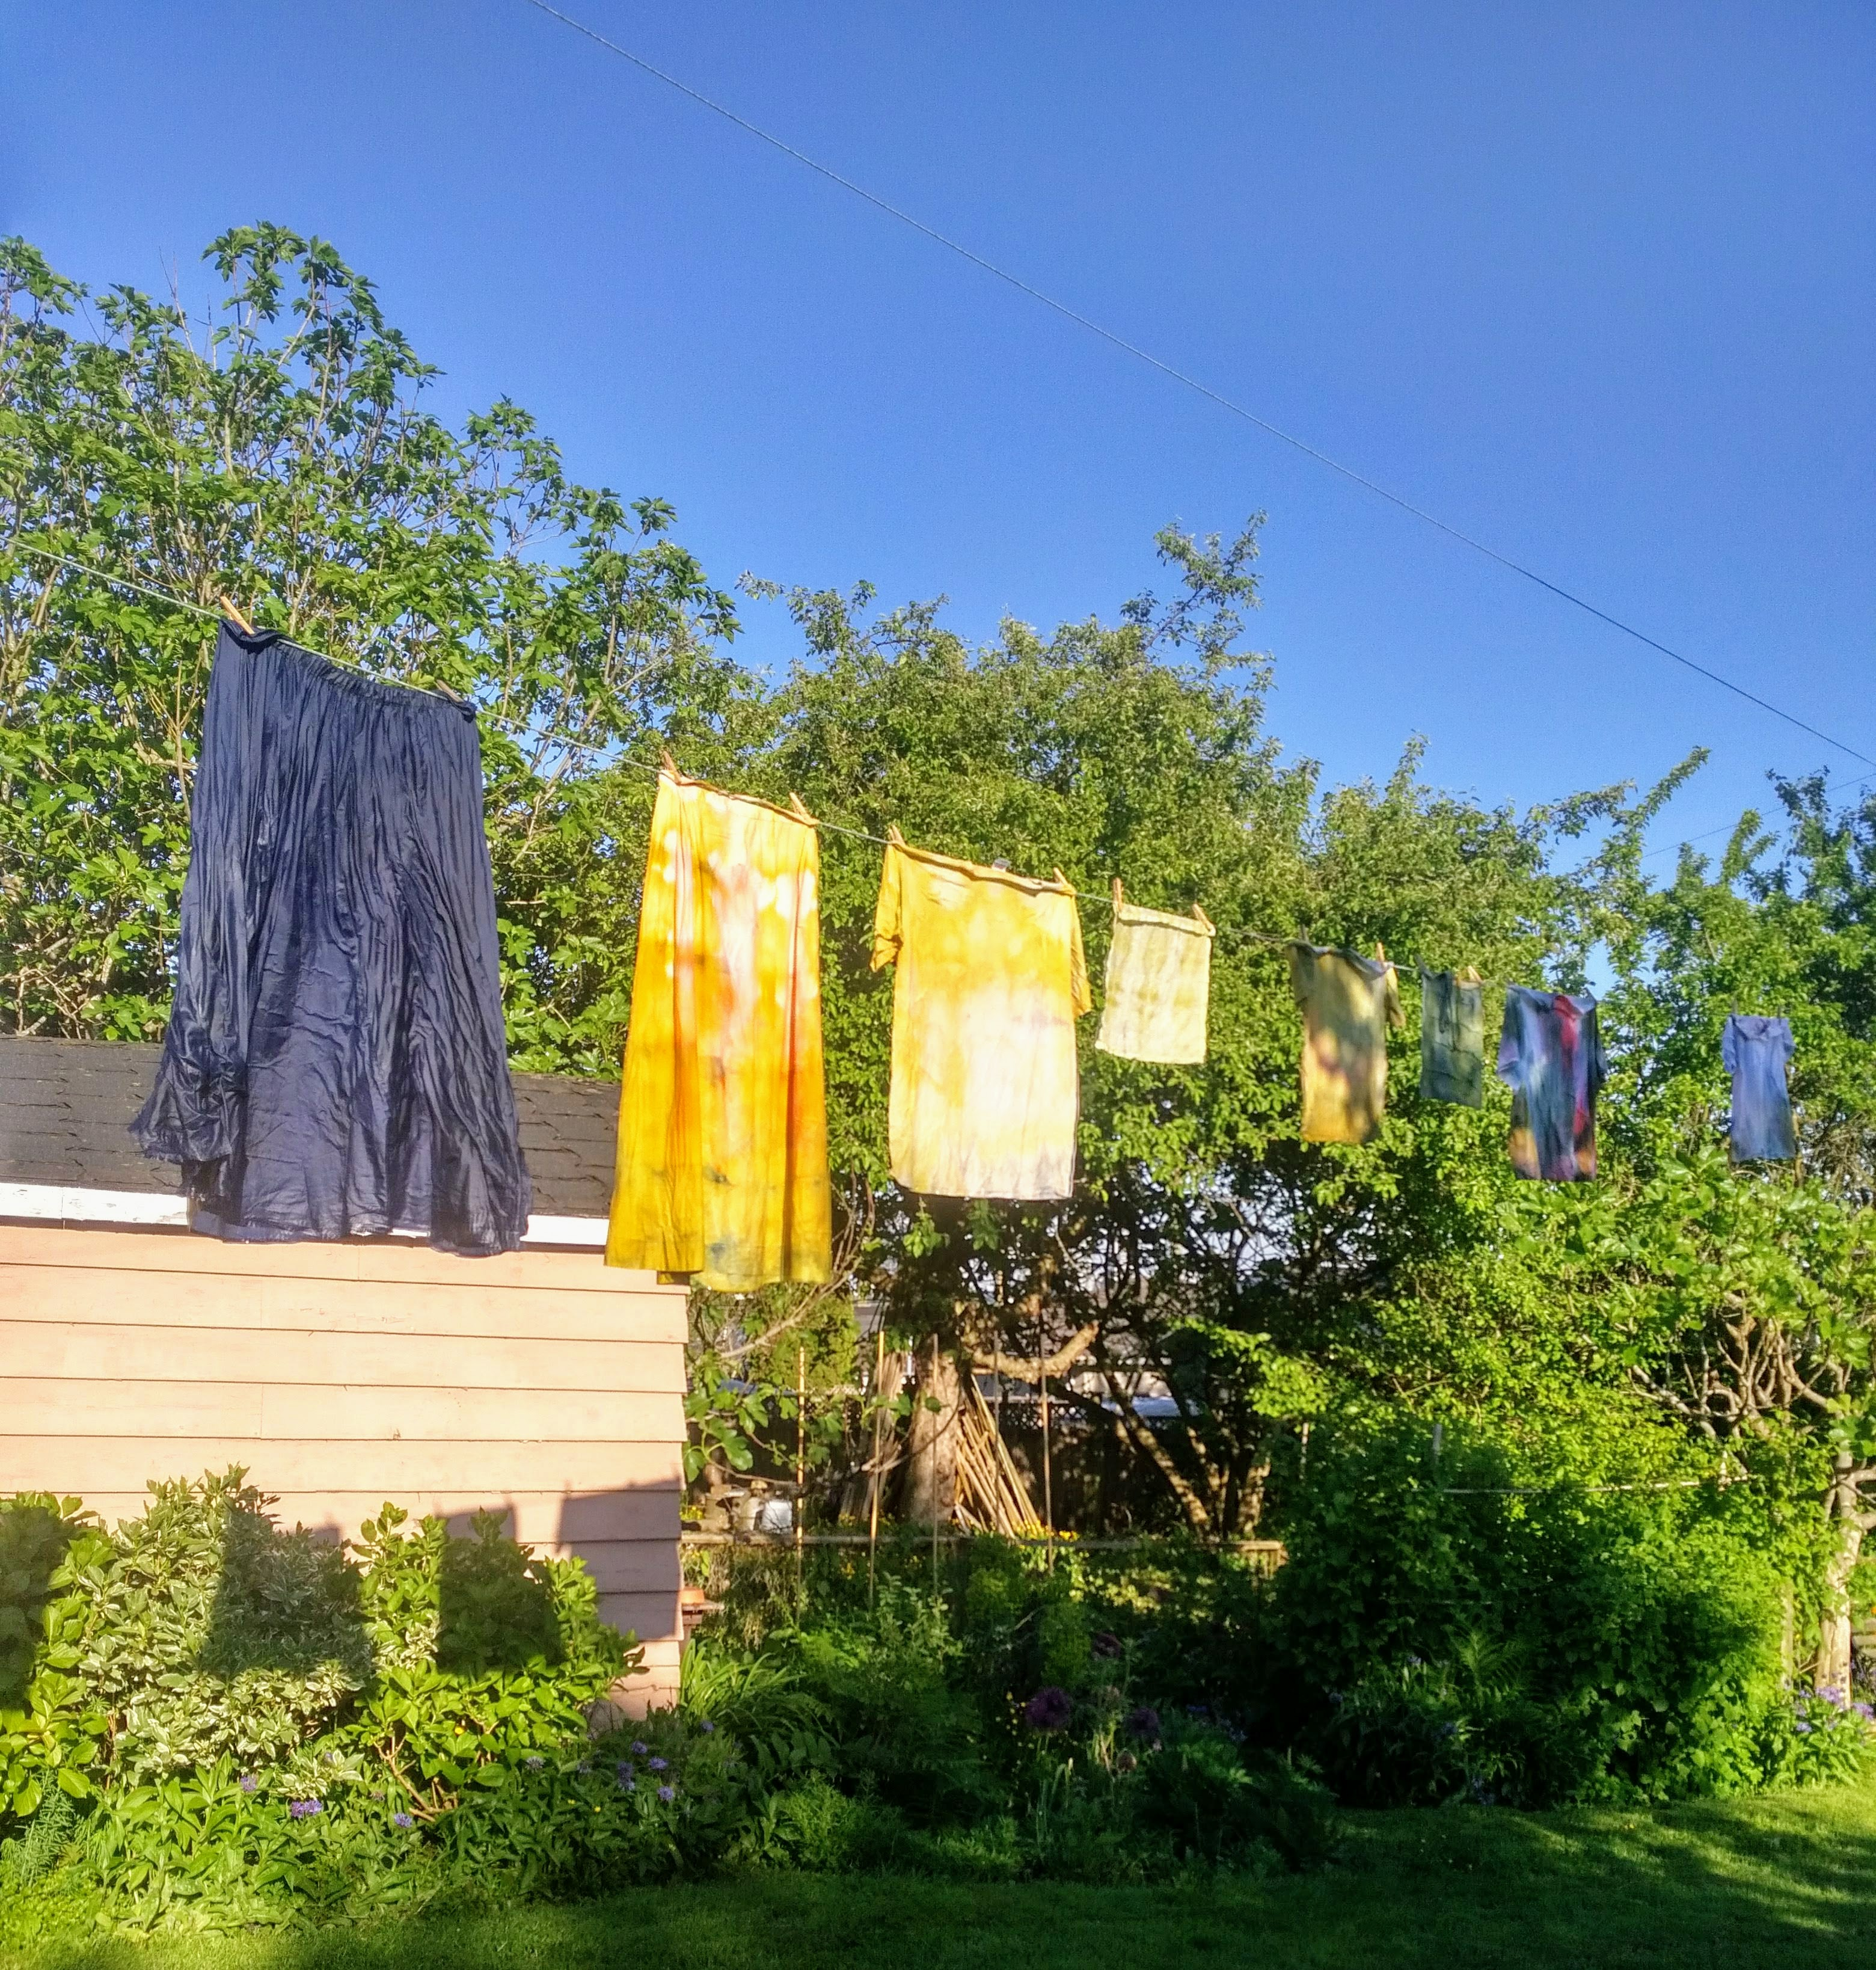 tie dyed clothing on clothesline